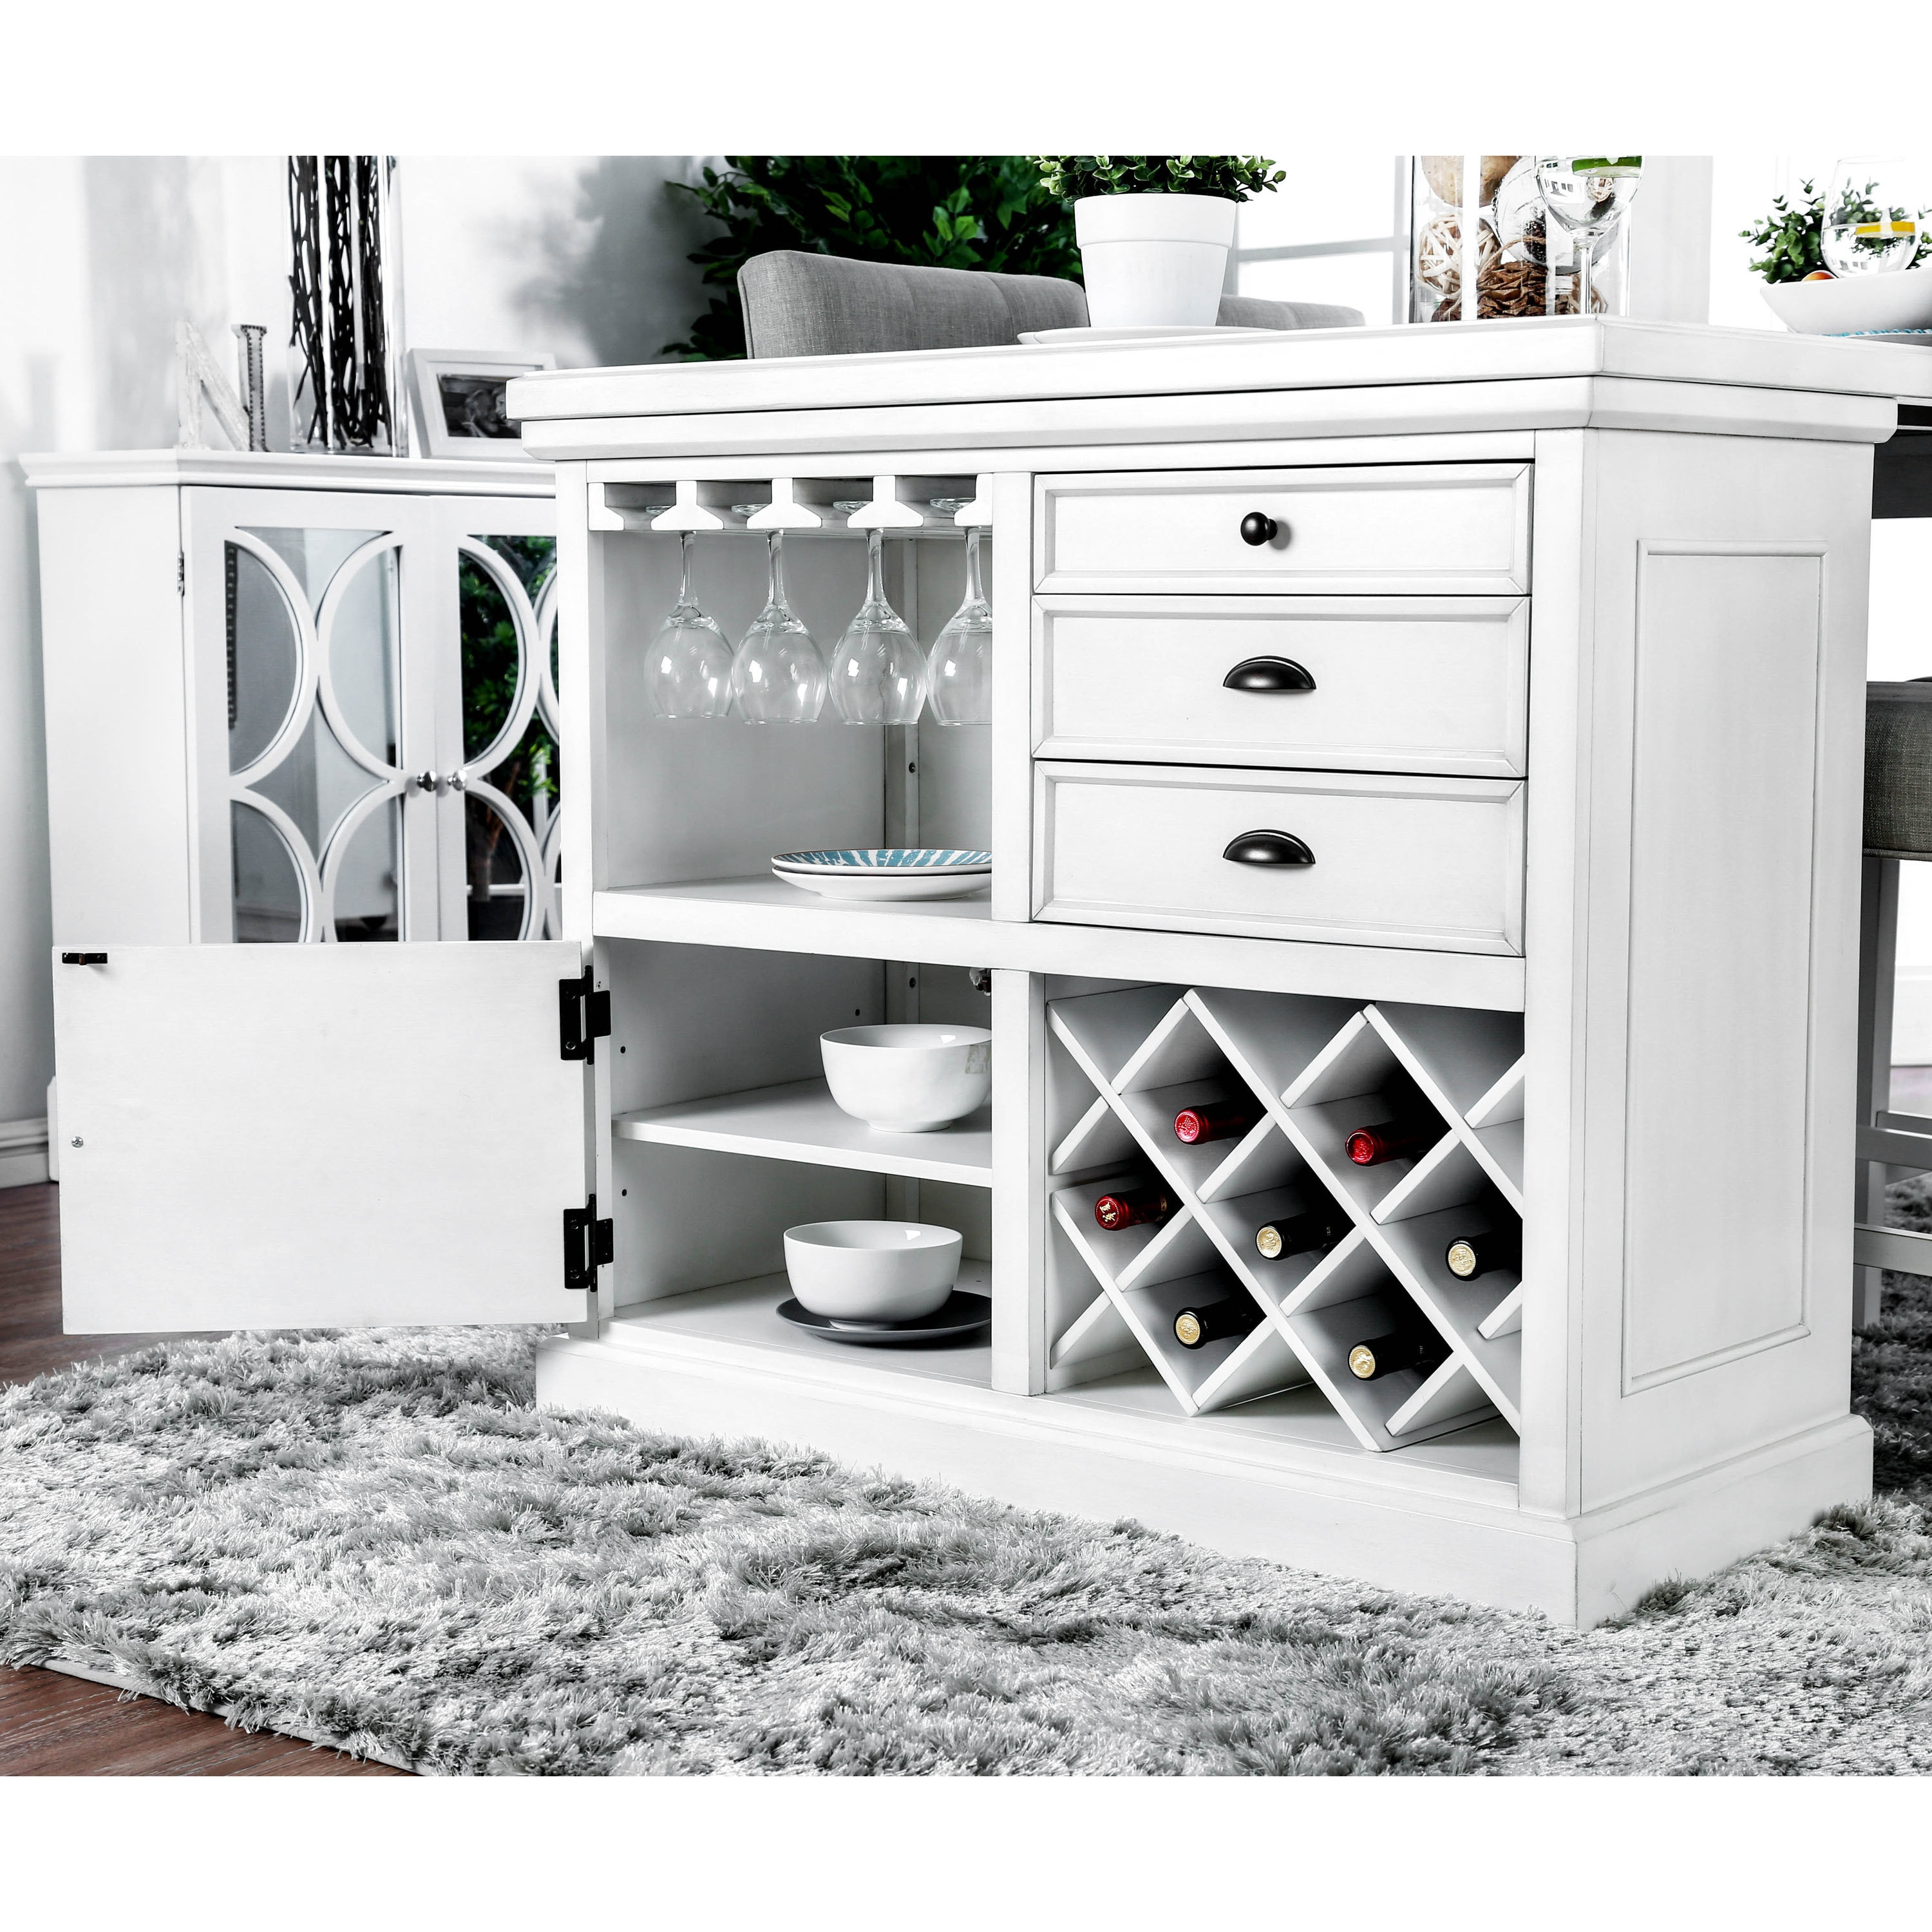 Shop Furniture of America Tia Cottage Style 5 Piece Counter Height